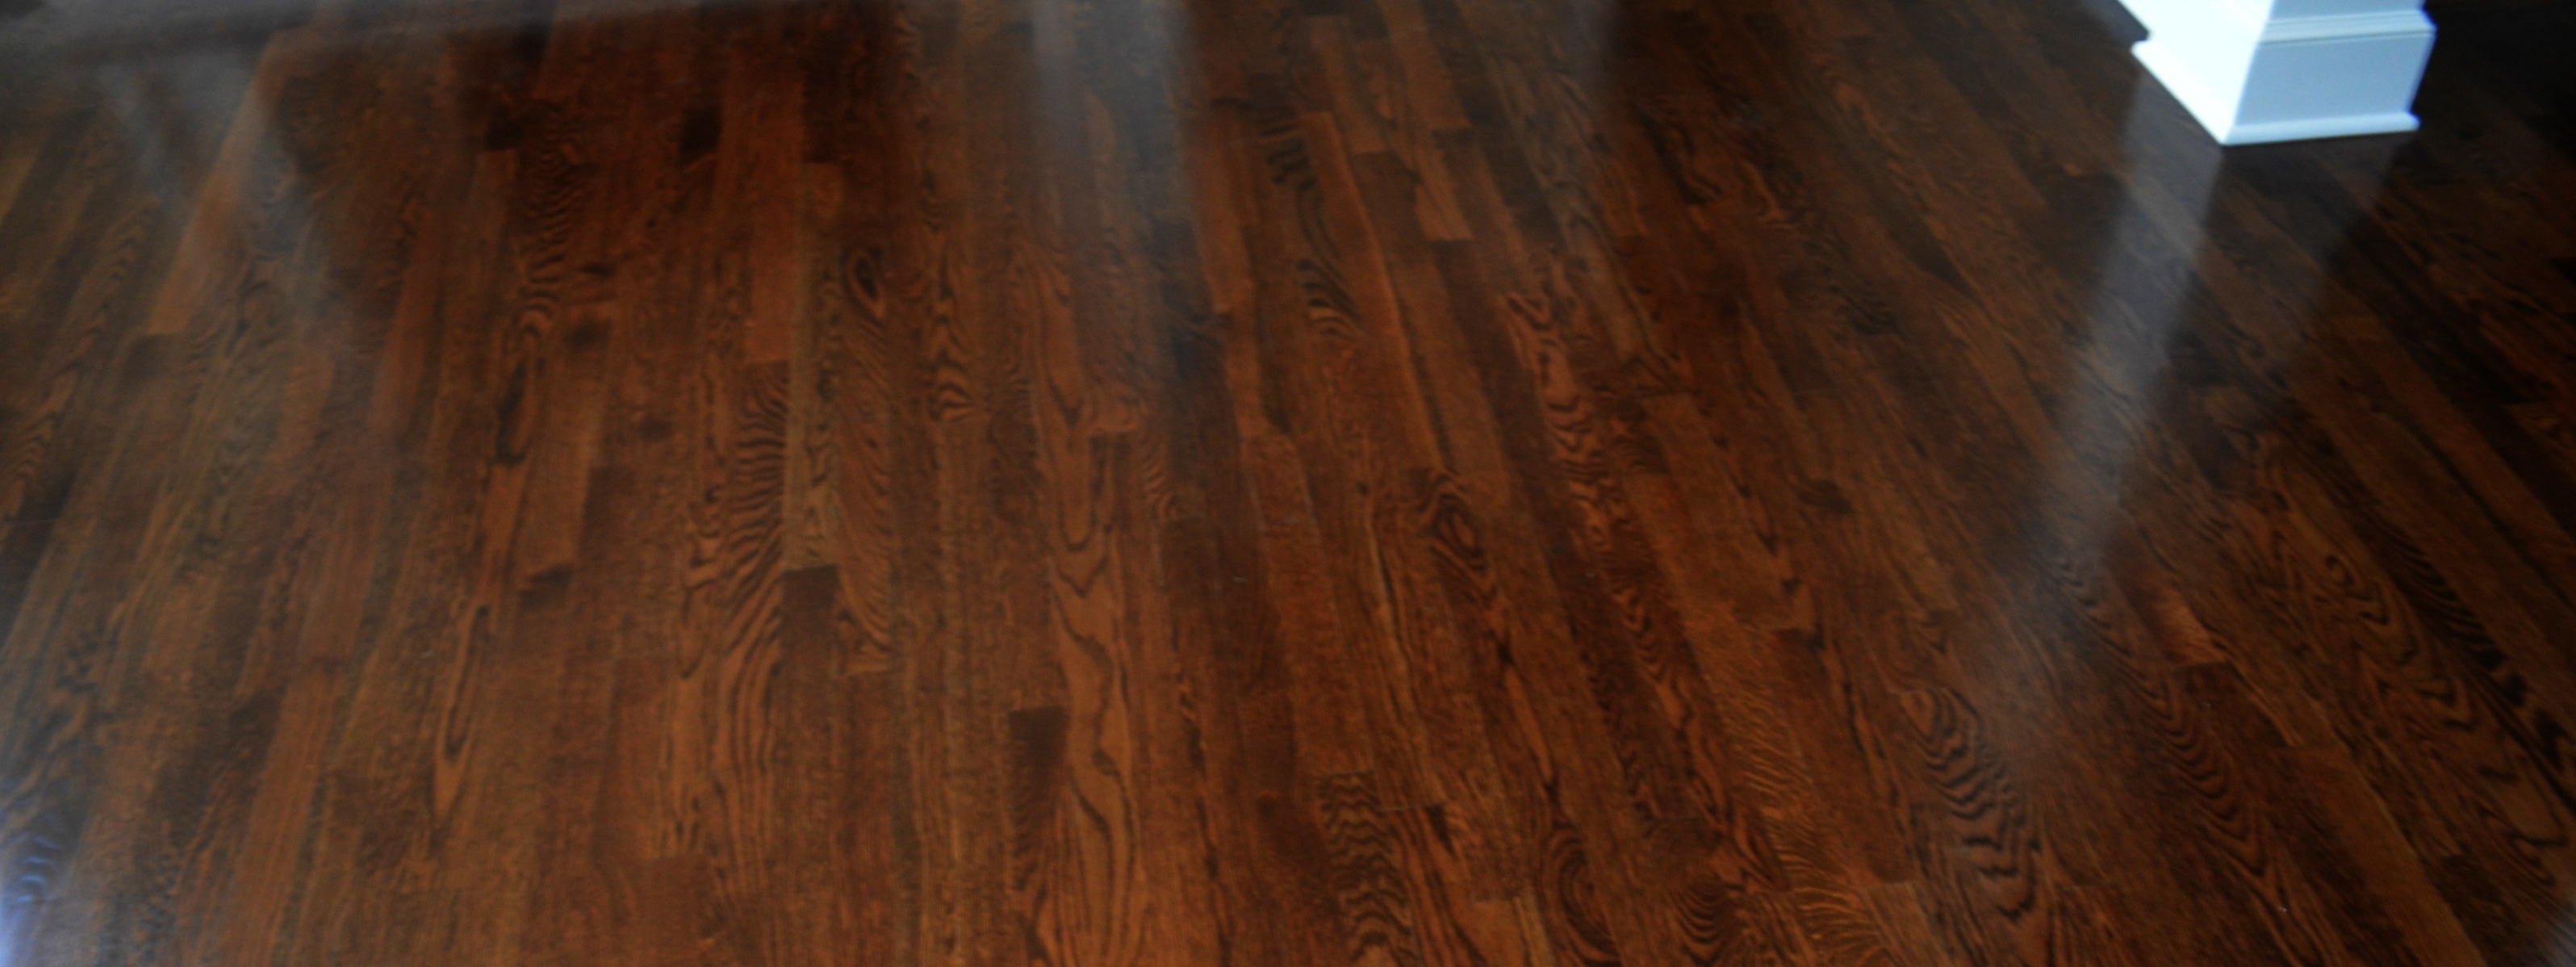 Hardwood flooring cork flooring remodeling for Black hardwood flooring